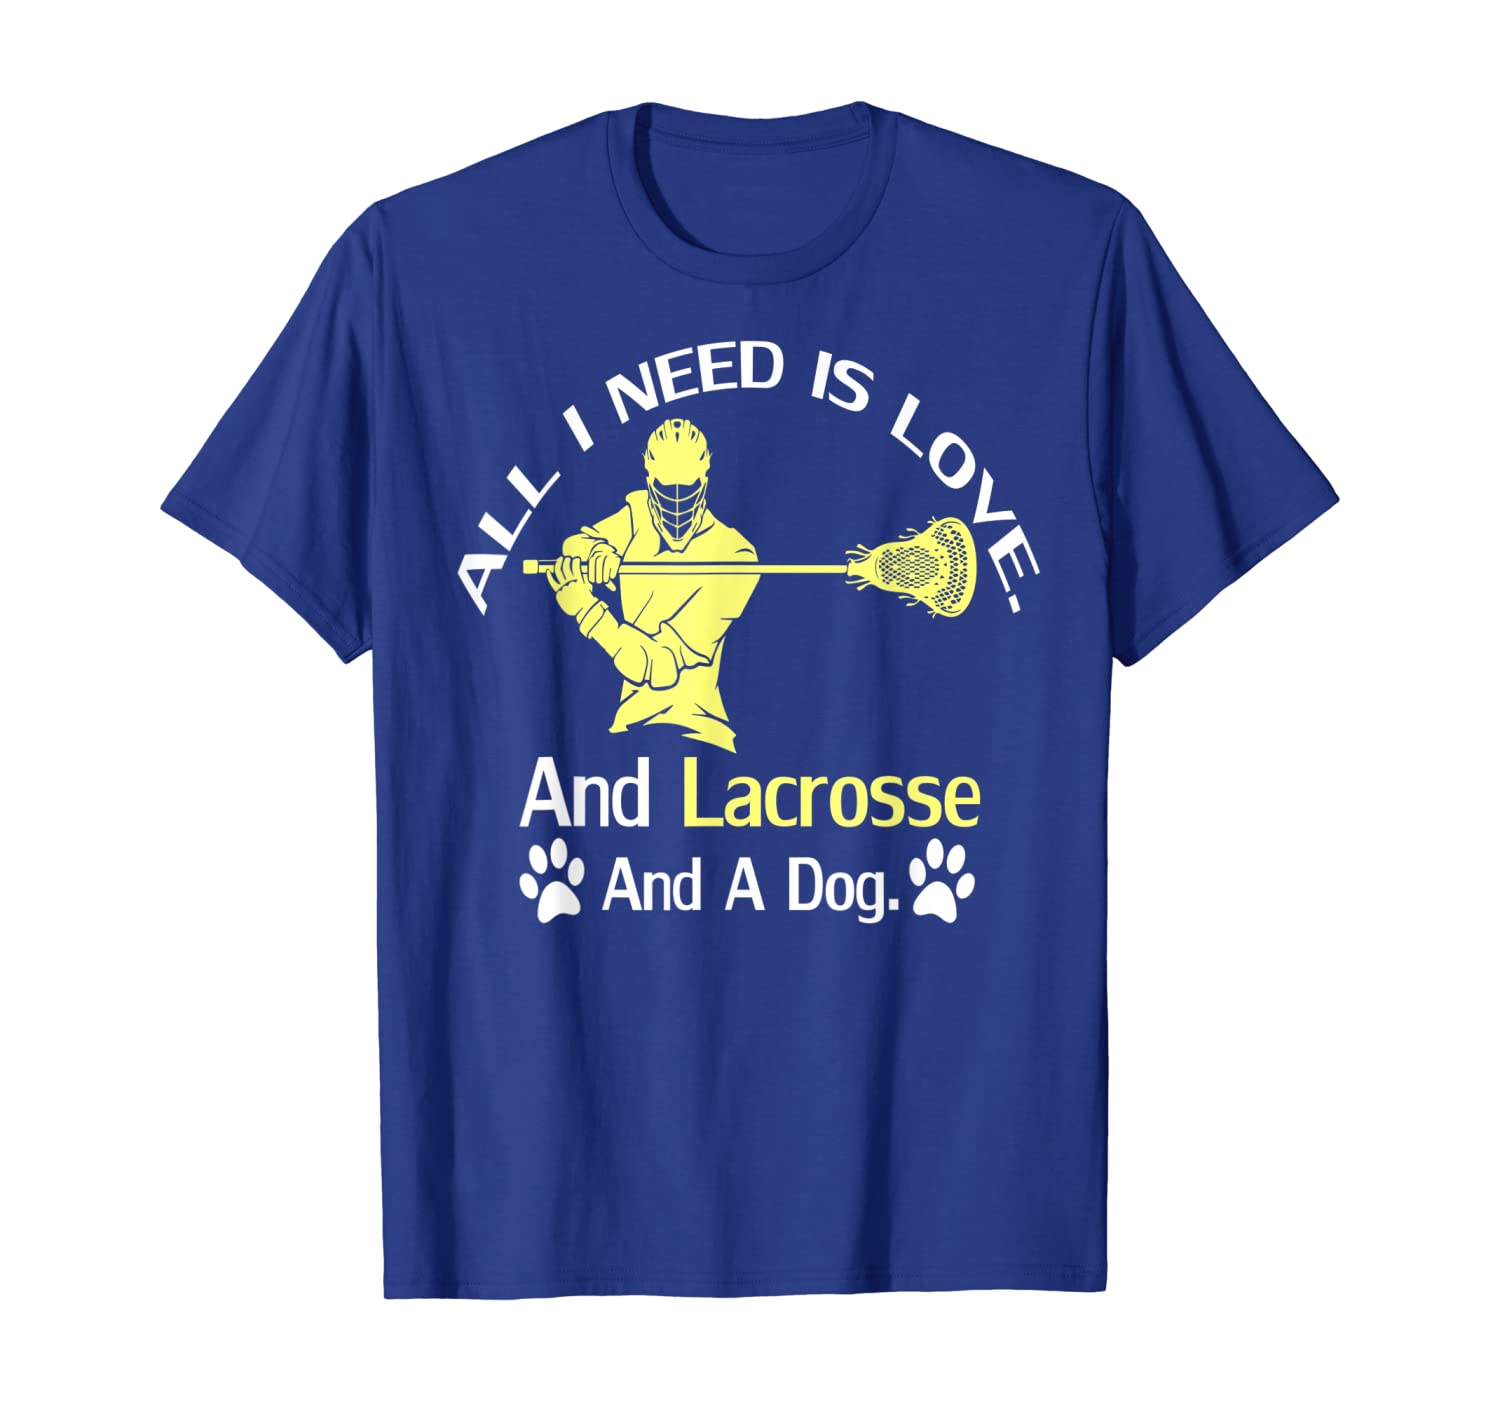 All I Need Is Love And Lacrosse And A Dog T Shirt Unisex Tshirt